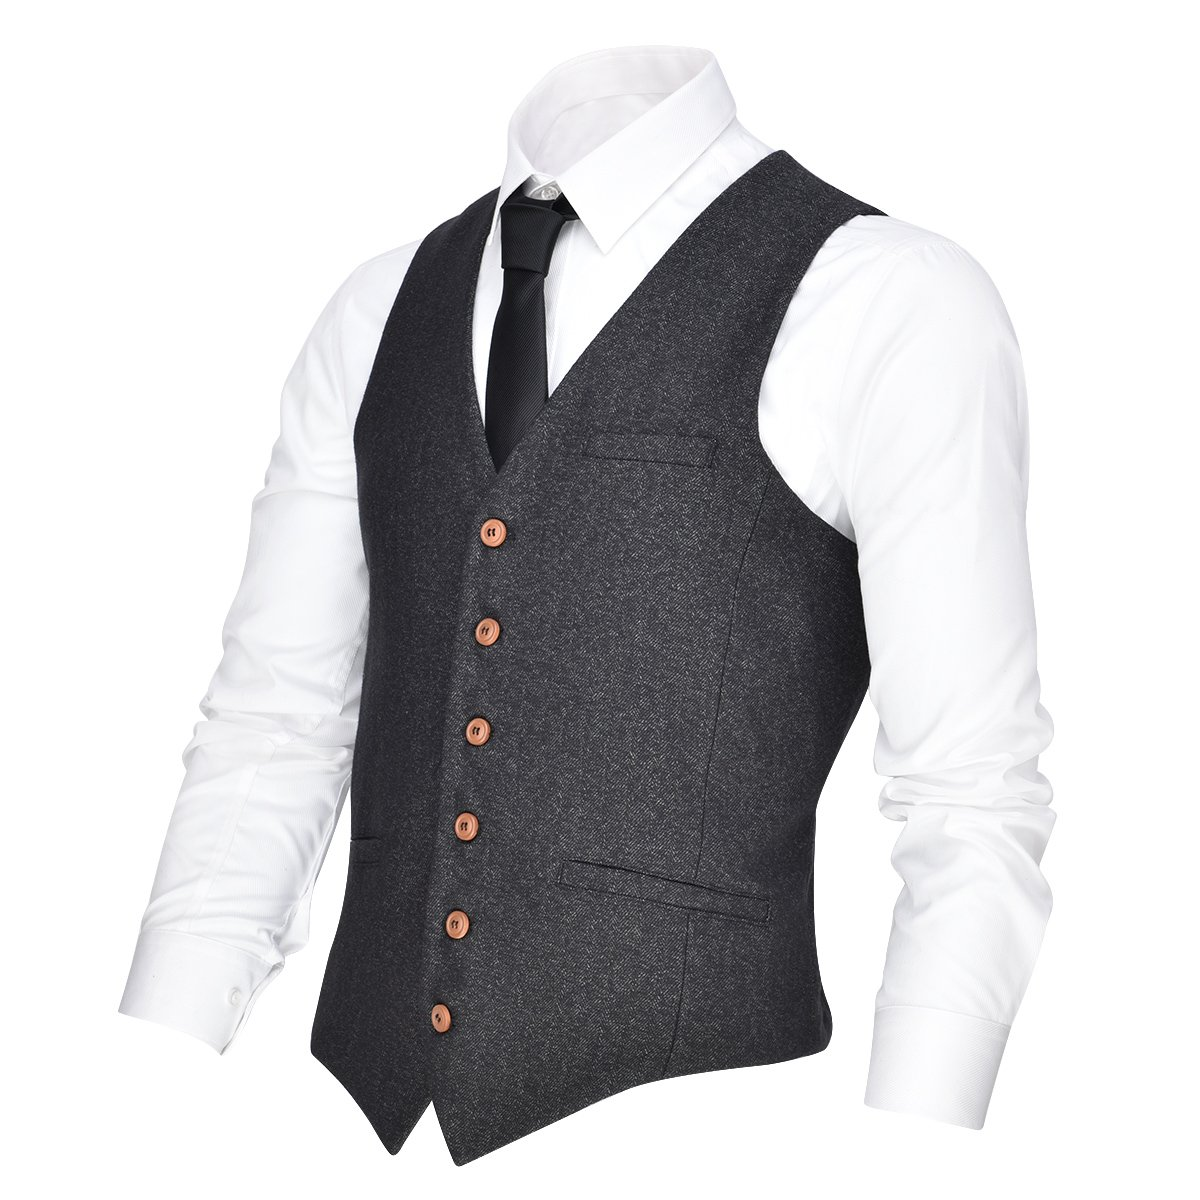 VOBOOM Men's V-Neck Suit Vest Casual Slim Fit Dress 6 Button Vest Waistcoat (Grey, S)